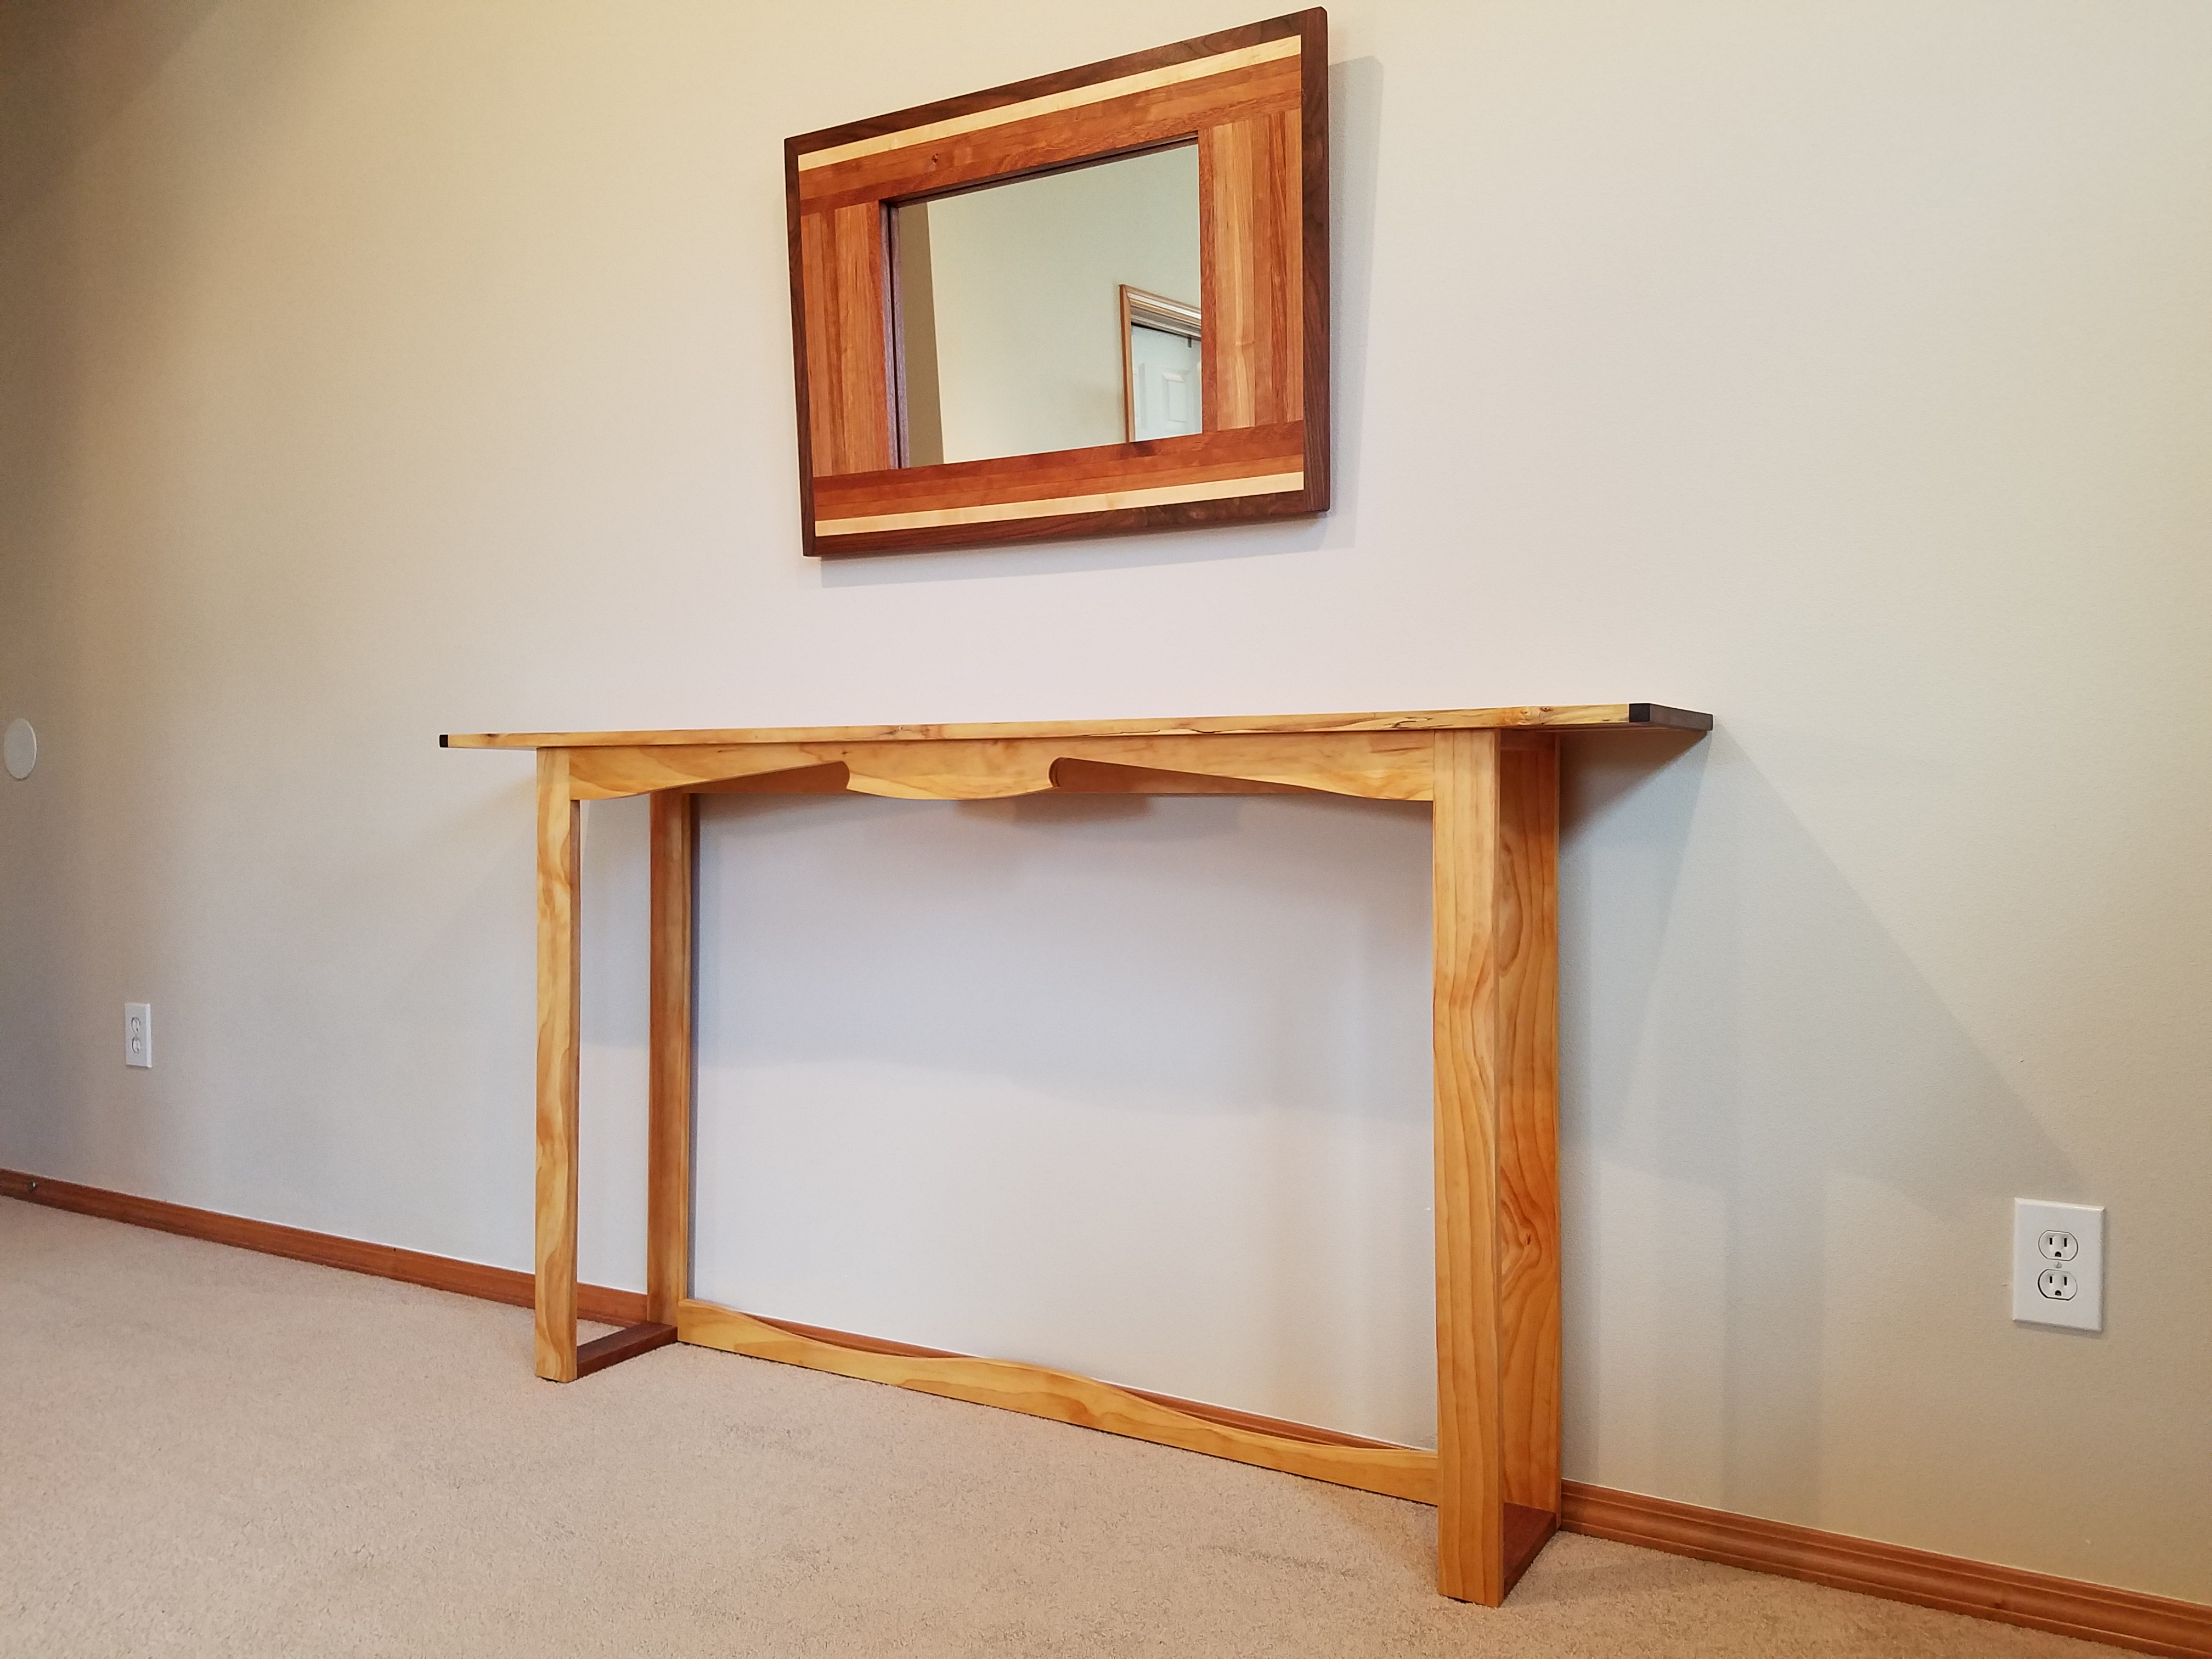 Wood Console Table With A Live Edge And Mirror — Handmade Natural Intended For Natural Wood Mirrored Media Console Tables (Gallery 11 of 20)